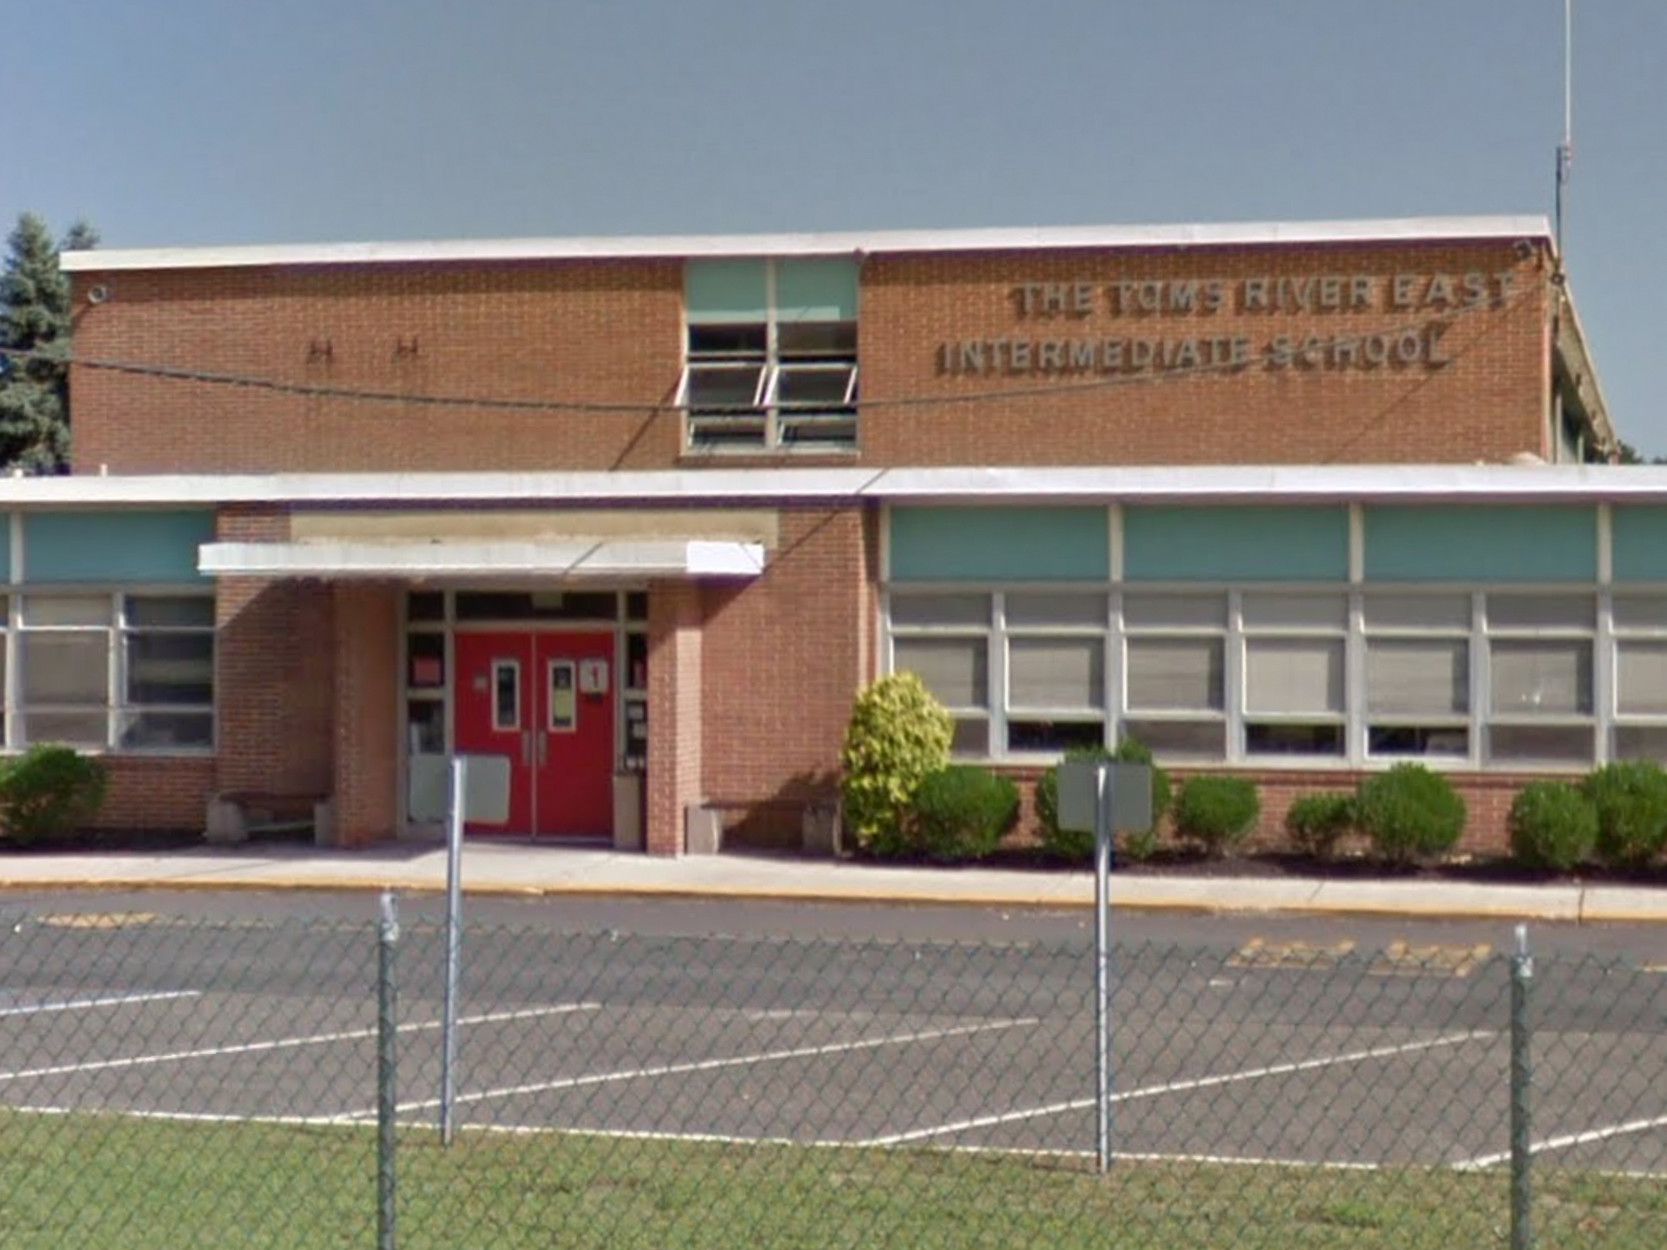 New Jersey teacher under investigation after inappropriate slavery lesson